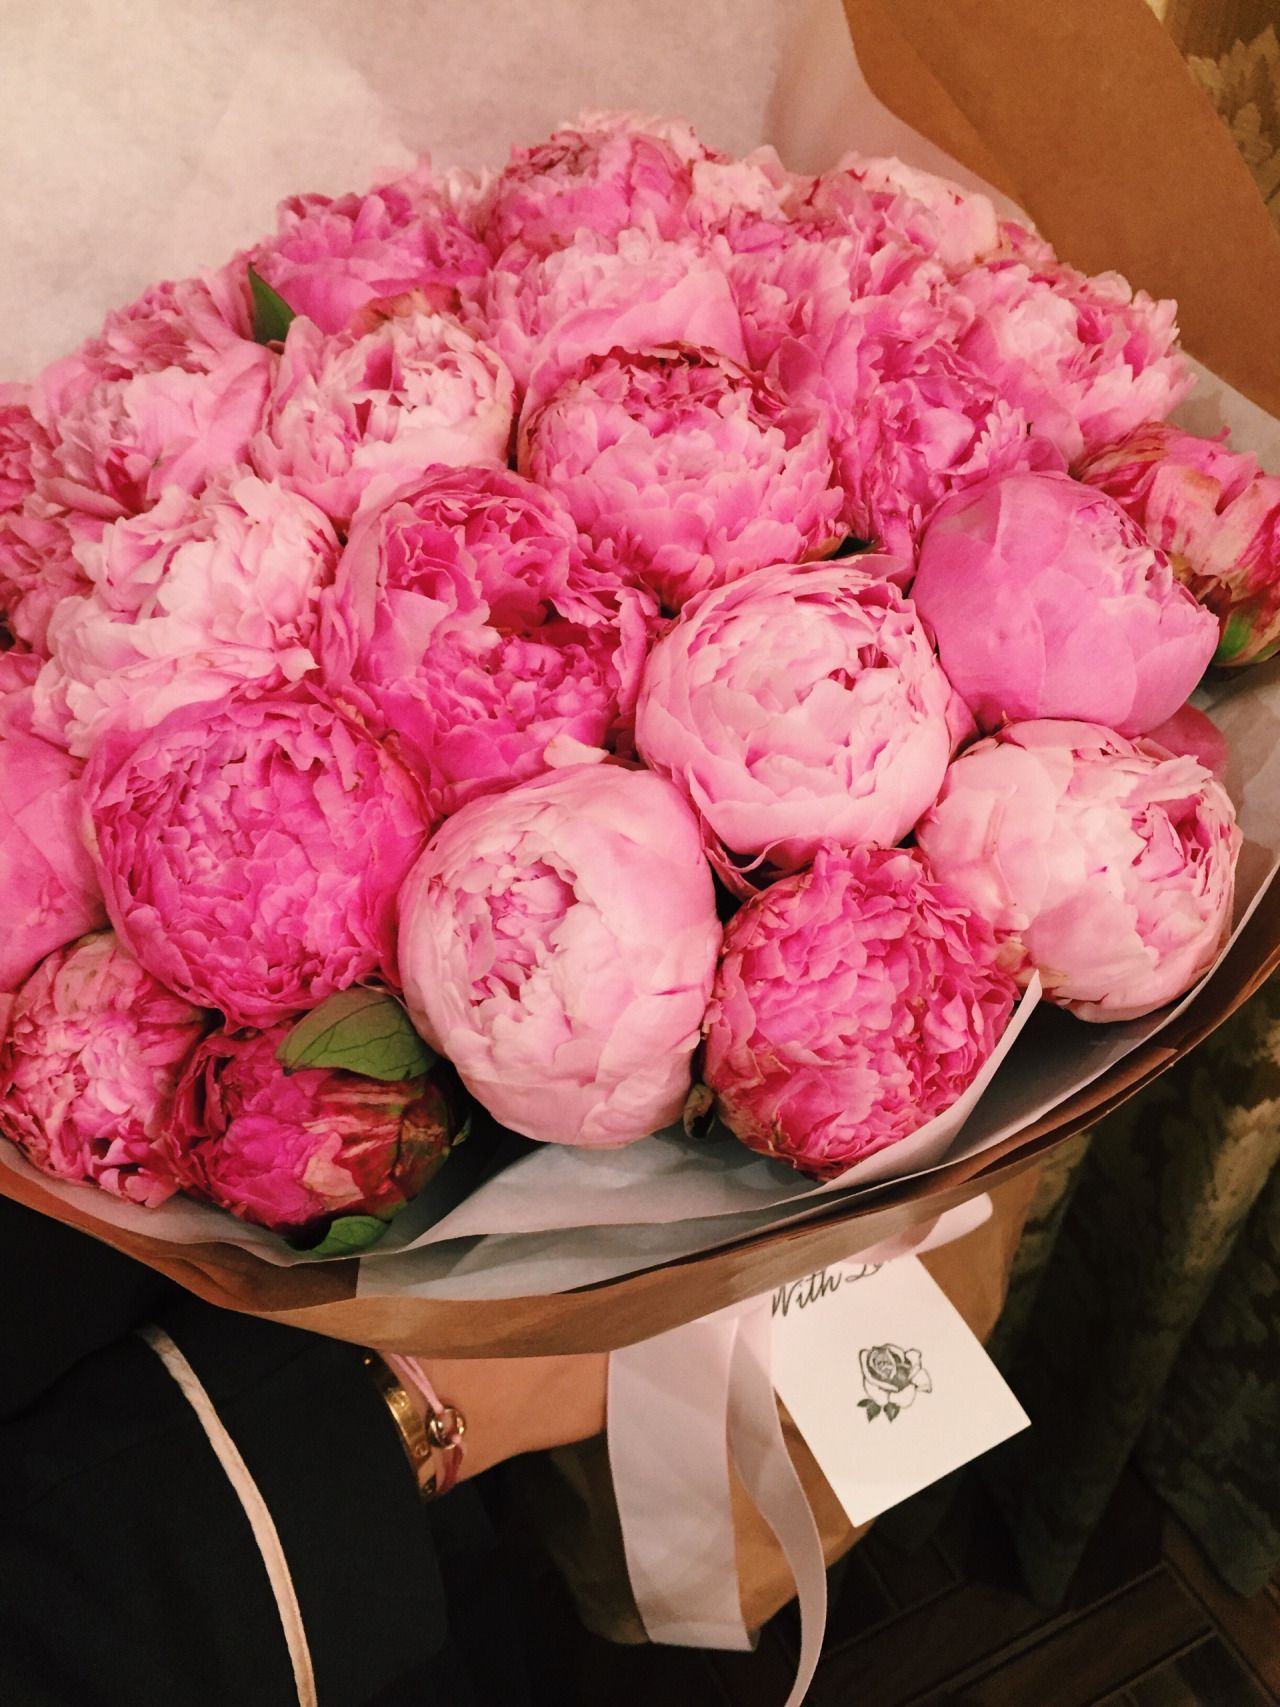 Pin by m on f l o r a l pinterest flower boutique flower flower bouquets flowers flower boutique ana rosa flower power colorful posts moscow floral bouquets izmirmasajfo Images